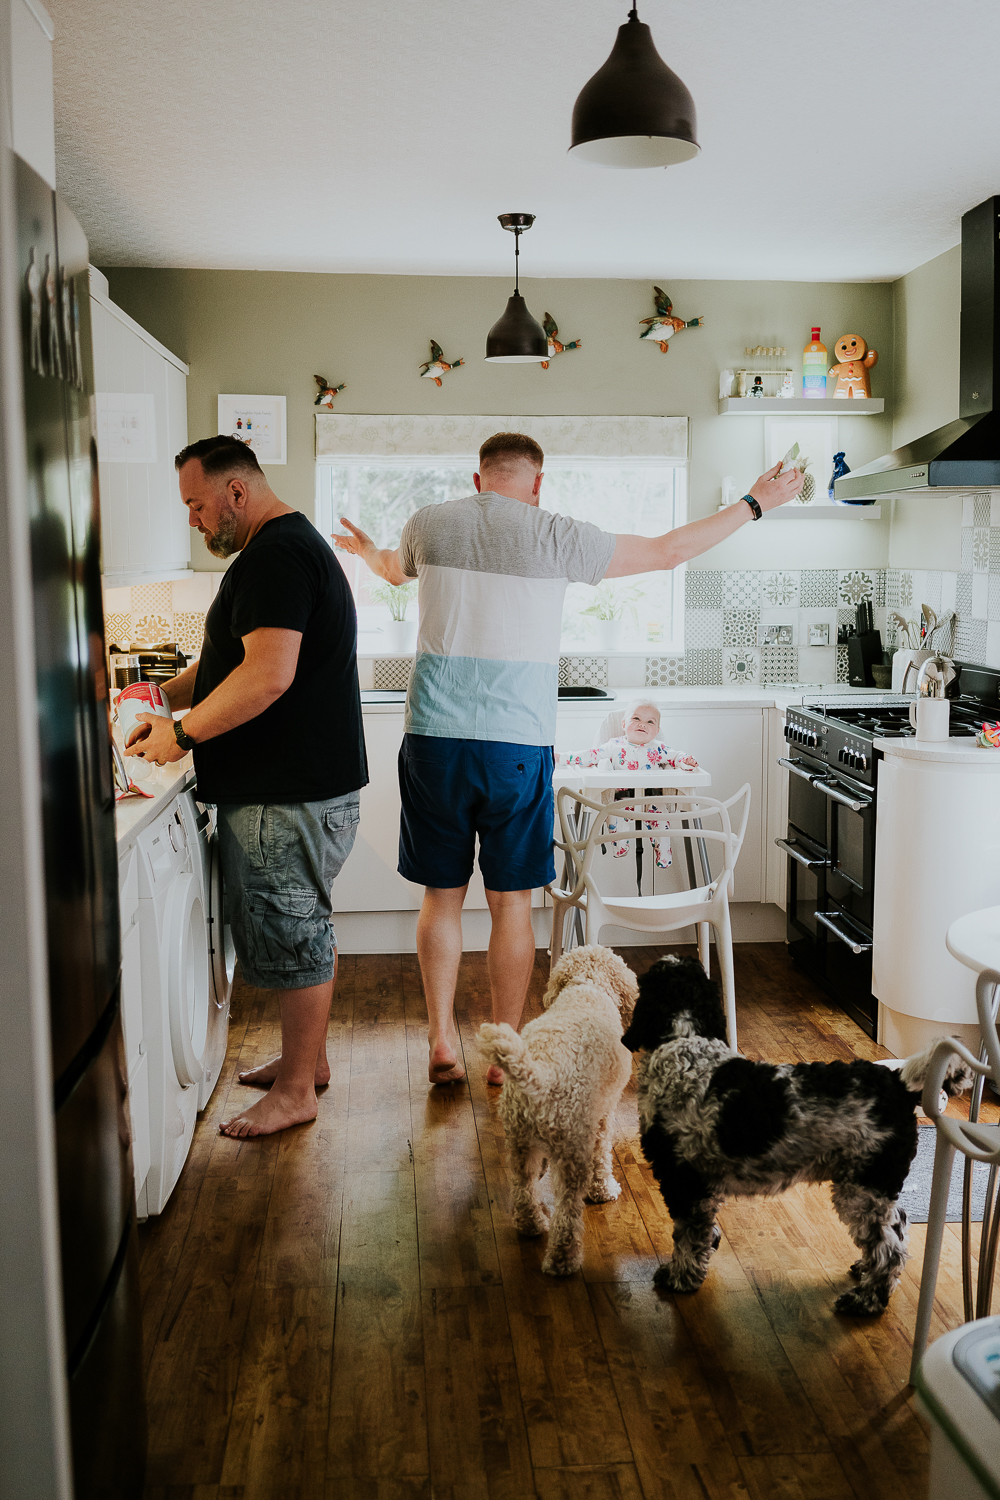 day in the life photo shoot two dads with baby twin girls in kitchen family scene